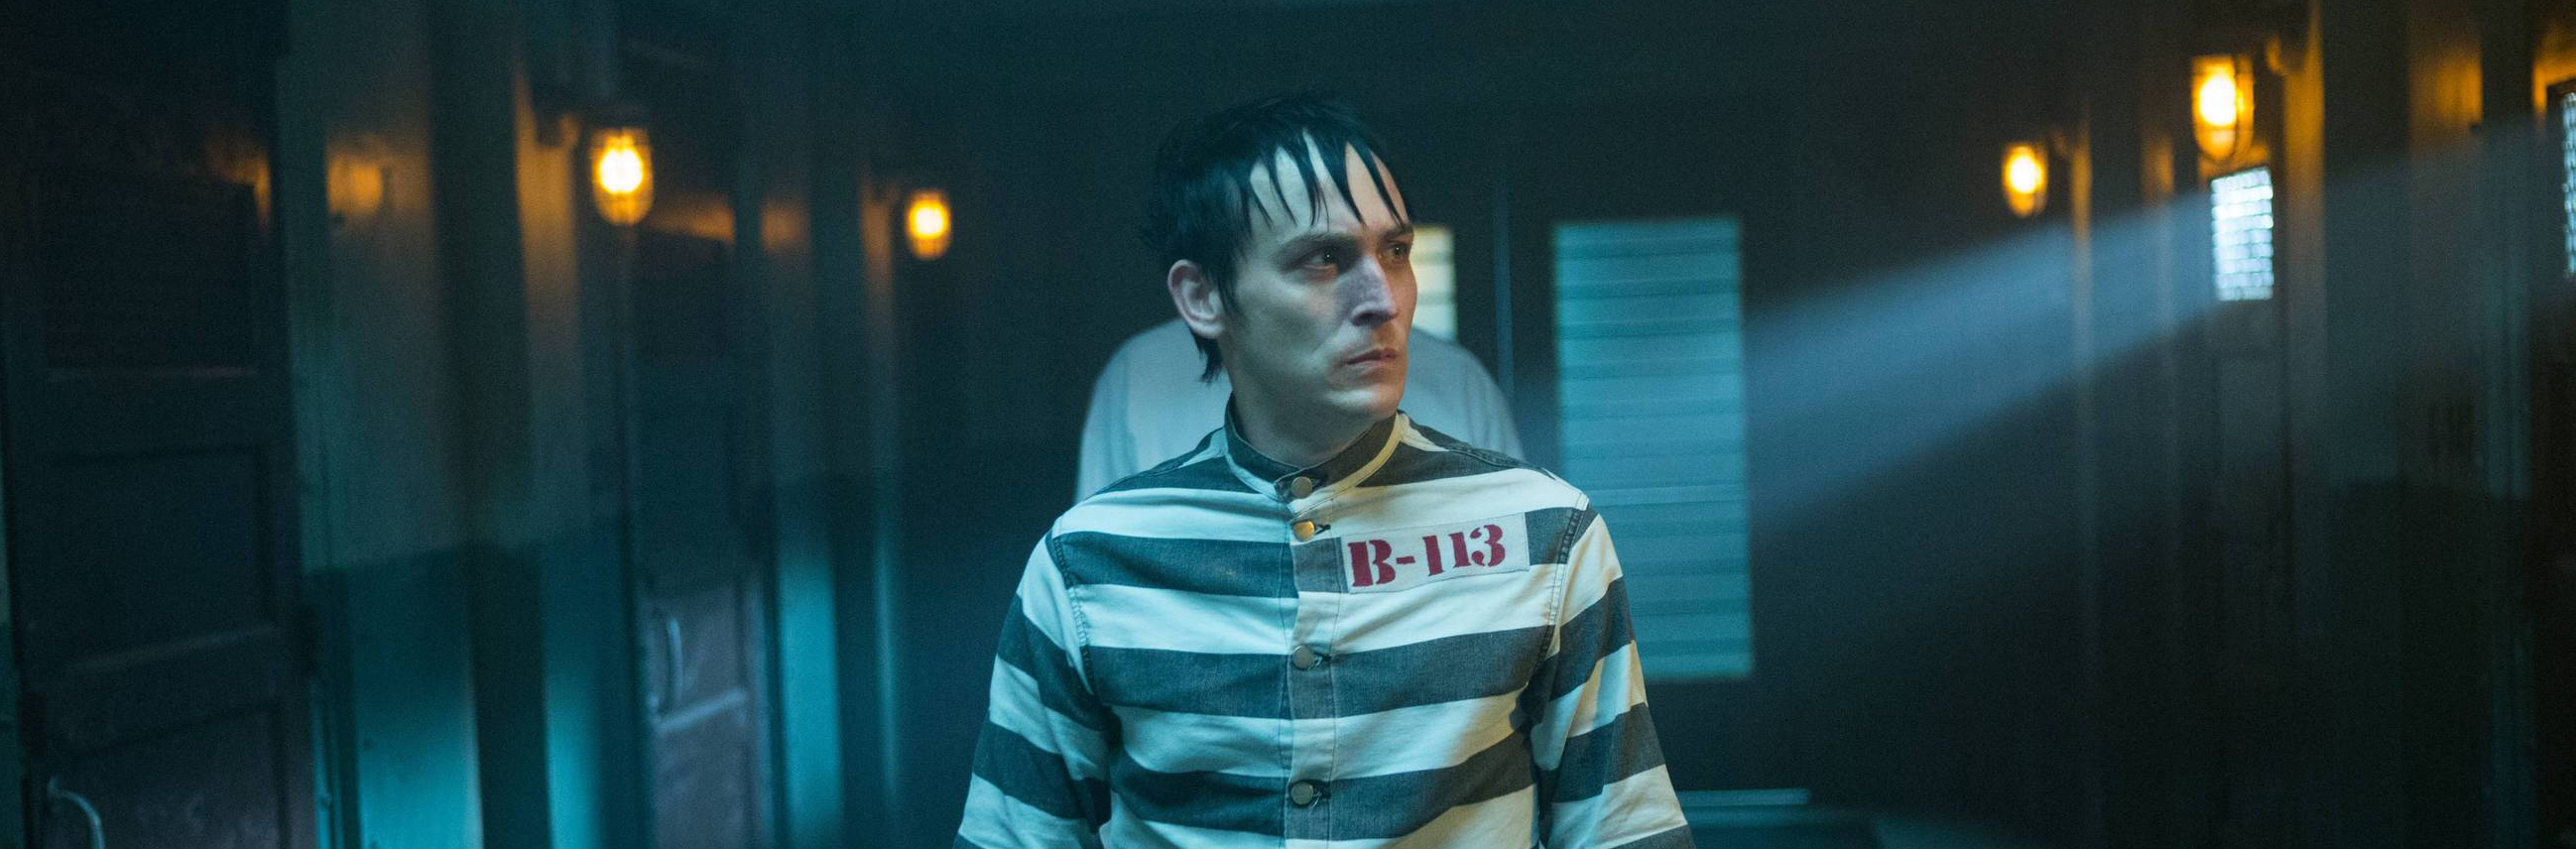 GOTHAM: Robin Lord Taylor in the ÒÒRise of the Villains: Mr. FreezeÓ  winter premiere episode of of GOTHAM airing Monday, Feb. 29 (8:00-9:01 PM ET/PT) on FOX.  ©2016 Fox Broadcasting Co. Cr: Jessica Miglio/ FOX